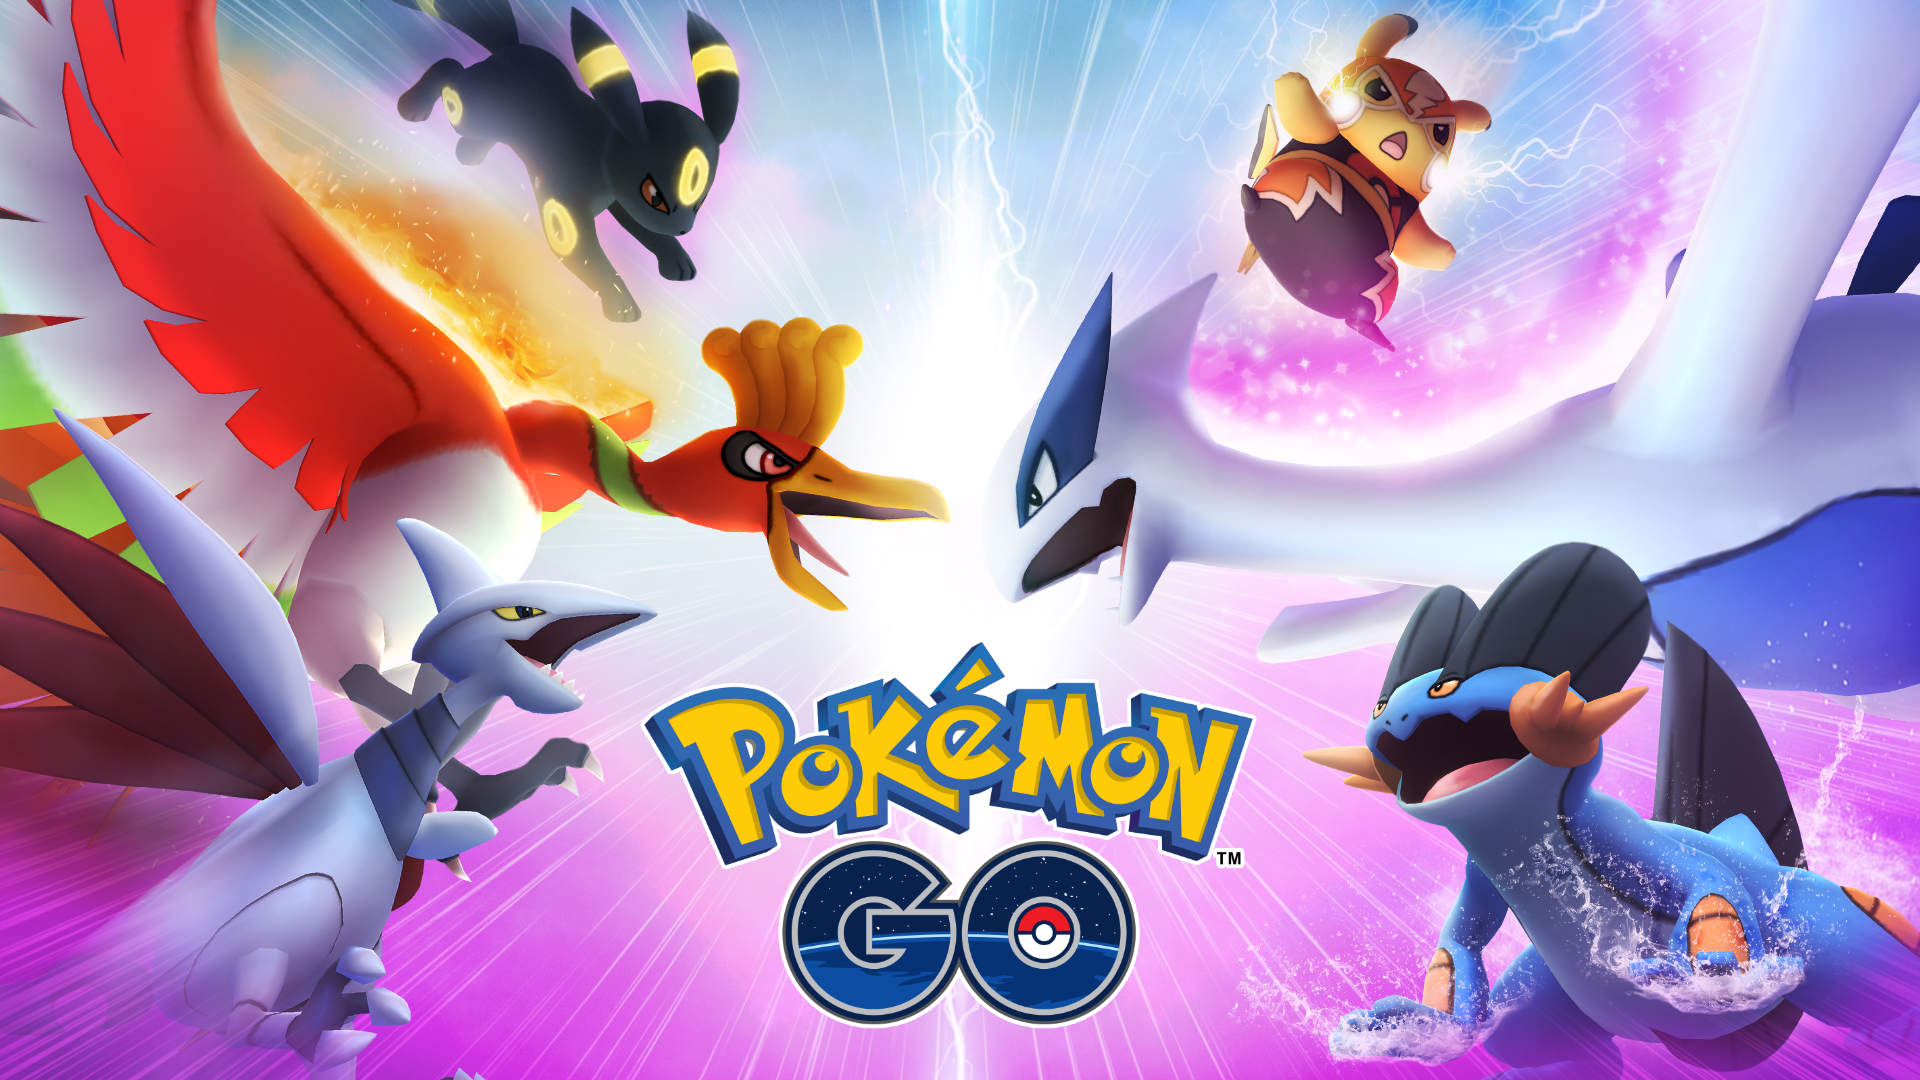 Promotional image for the Pokémon Go Go Battle league, showing Ho-Oh, Swampert, Skarmory, Luchador Pikachu, and Umbreon.